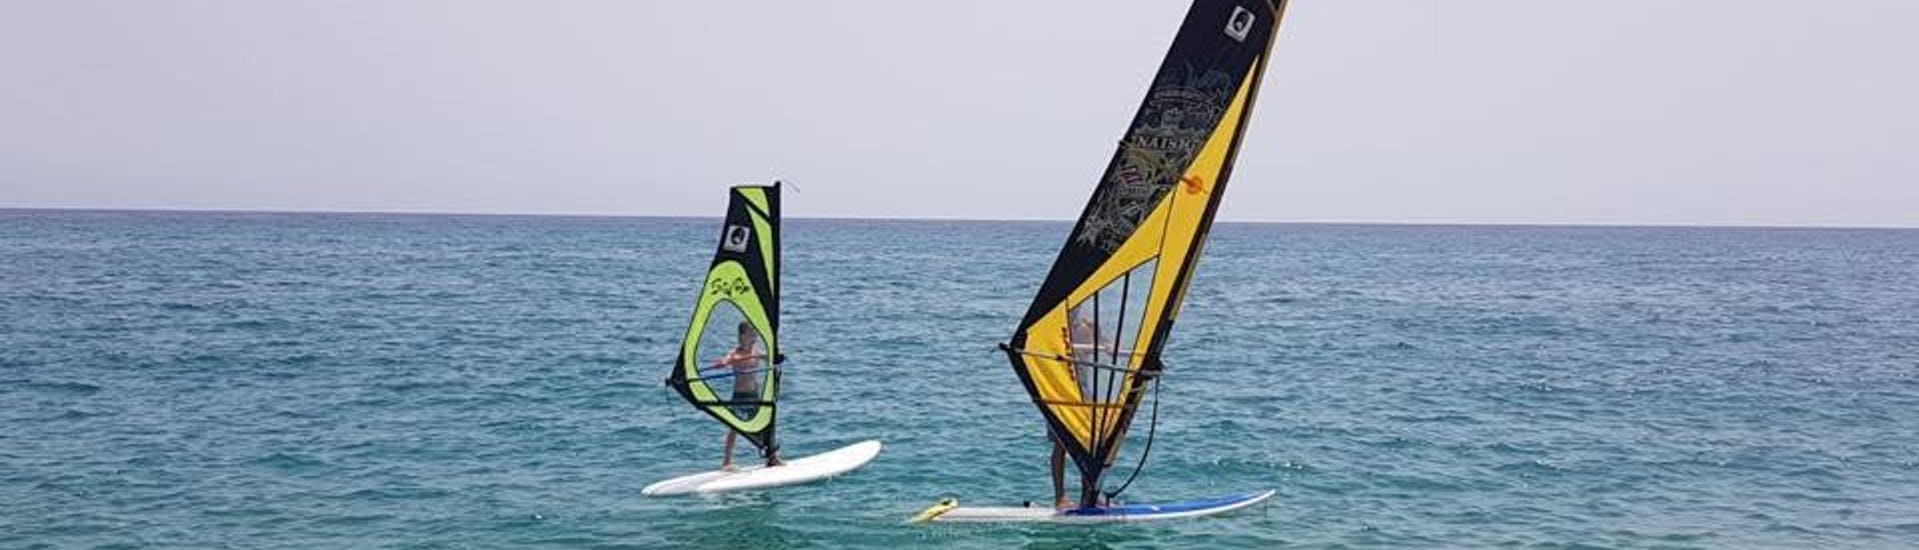 Windsurfing Lessons for Kids & Adults - Beginner